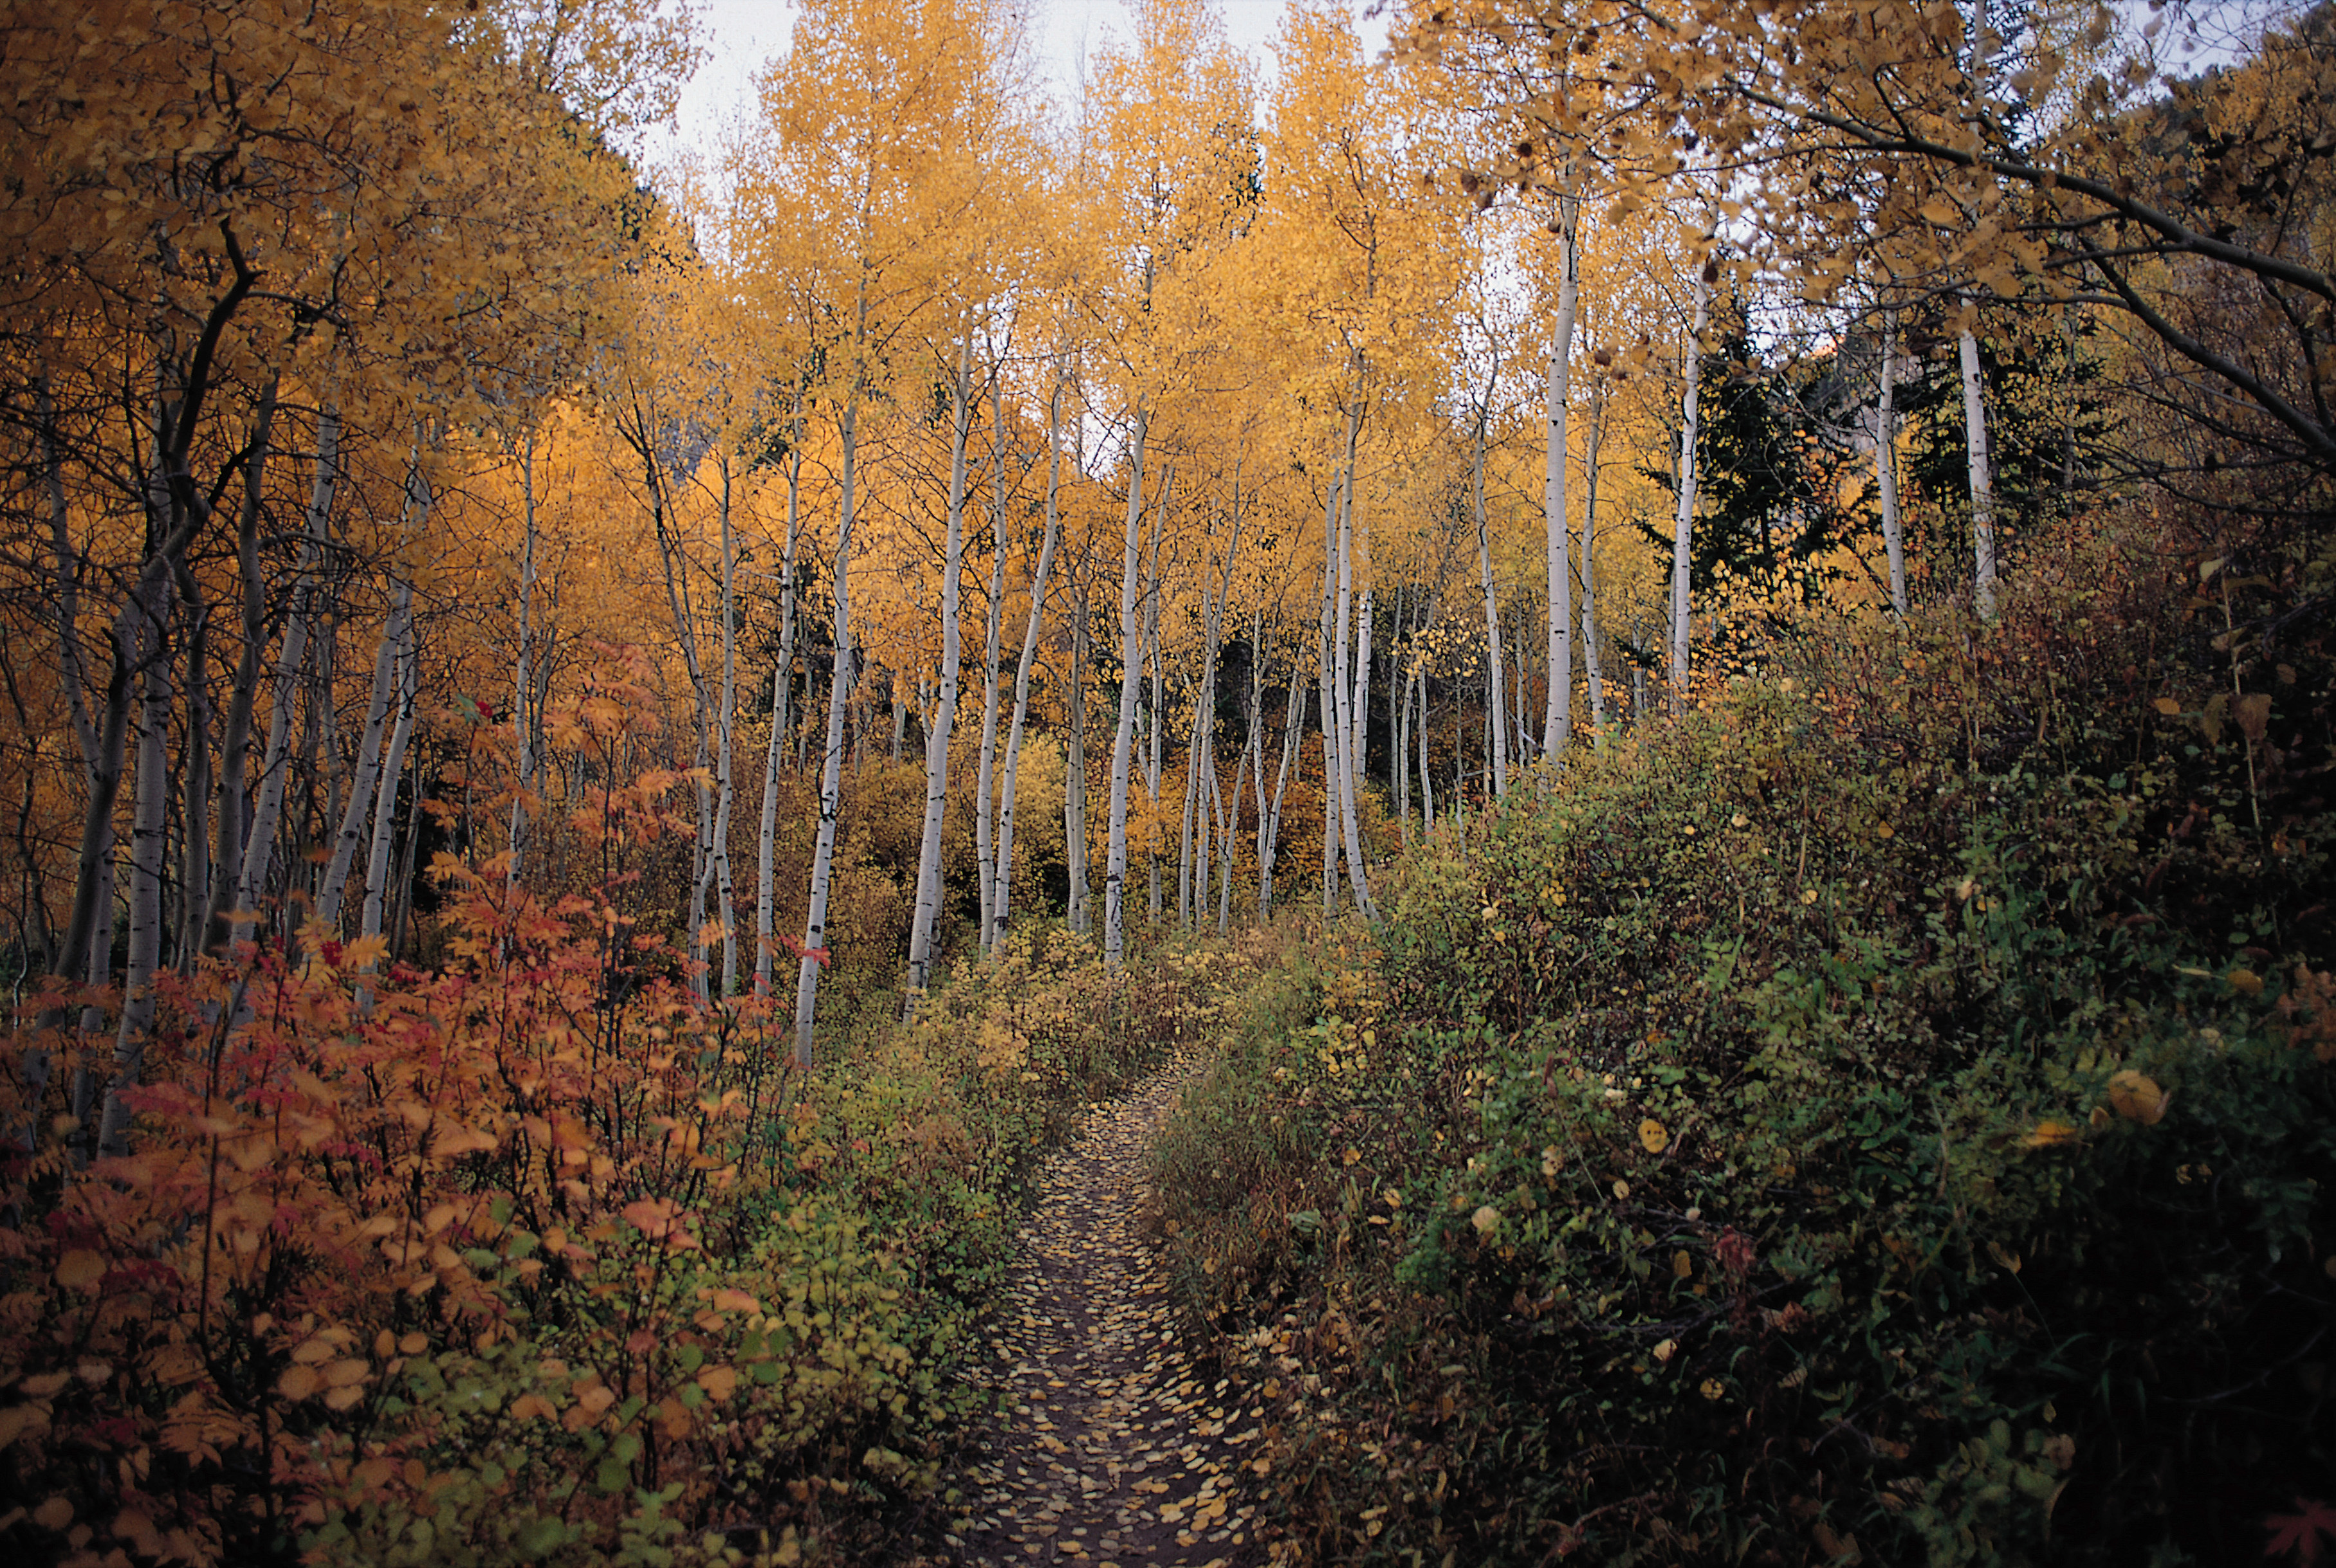 What Are The Landforms Of The Temperate Deciduous Forest